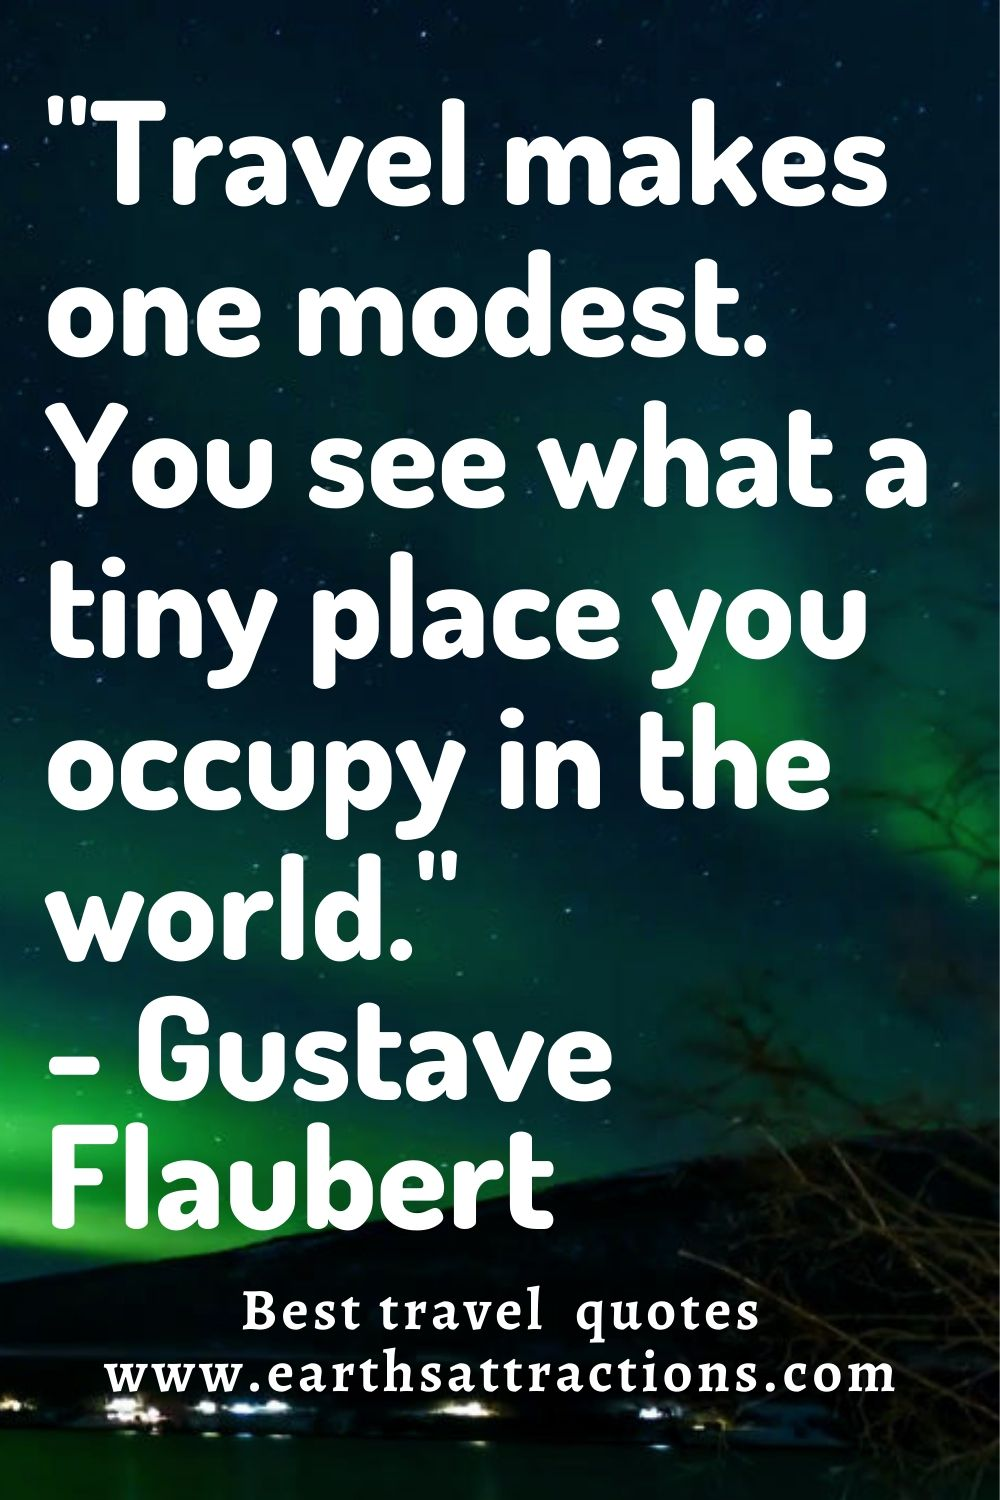 """""""Travel makes one modest. You see what a tiny place you occupy in the world."""" - Gustave Flaubert. Discover now the best travel quotes!"""